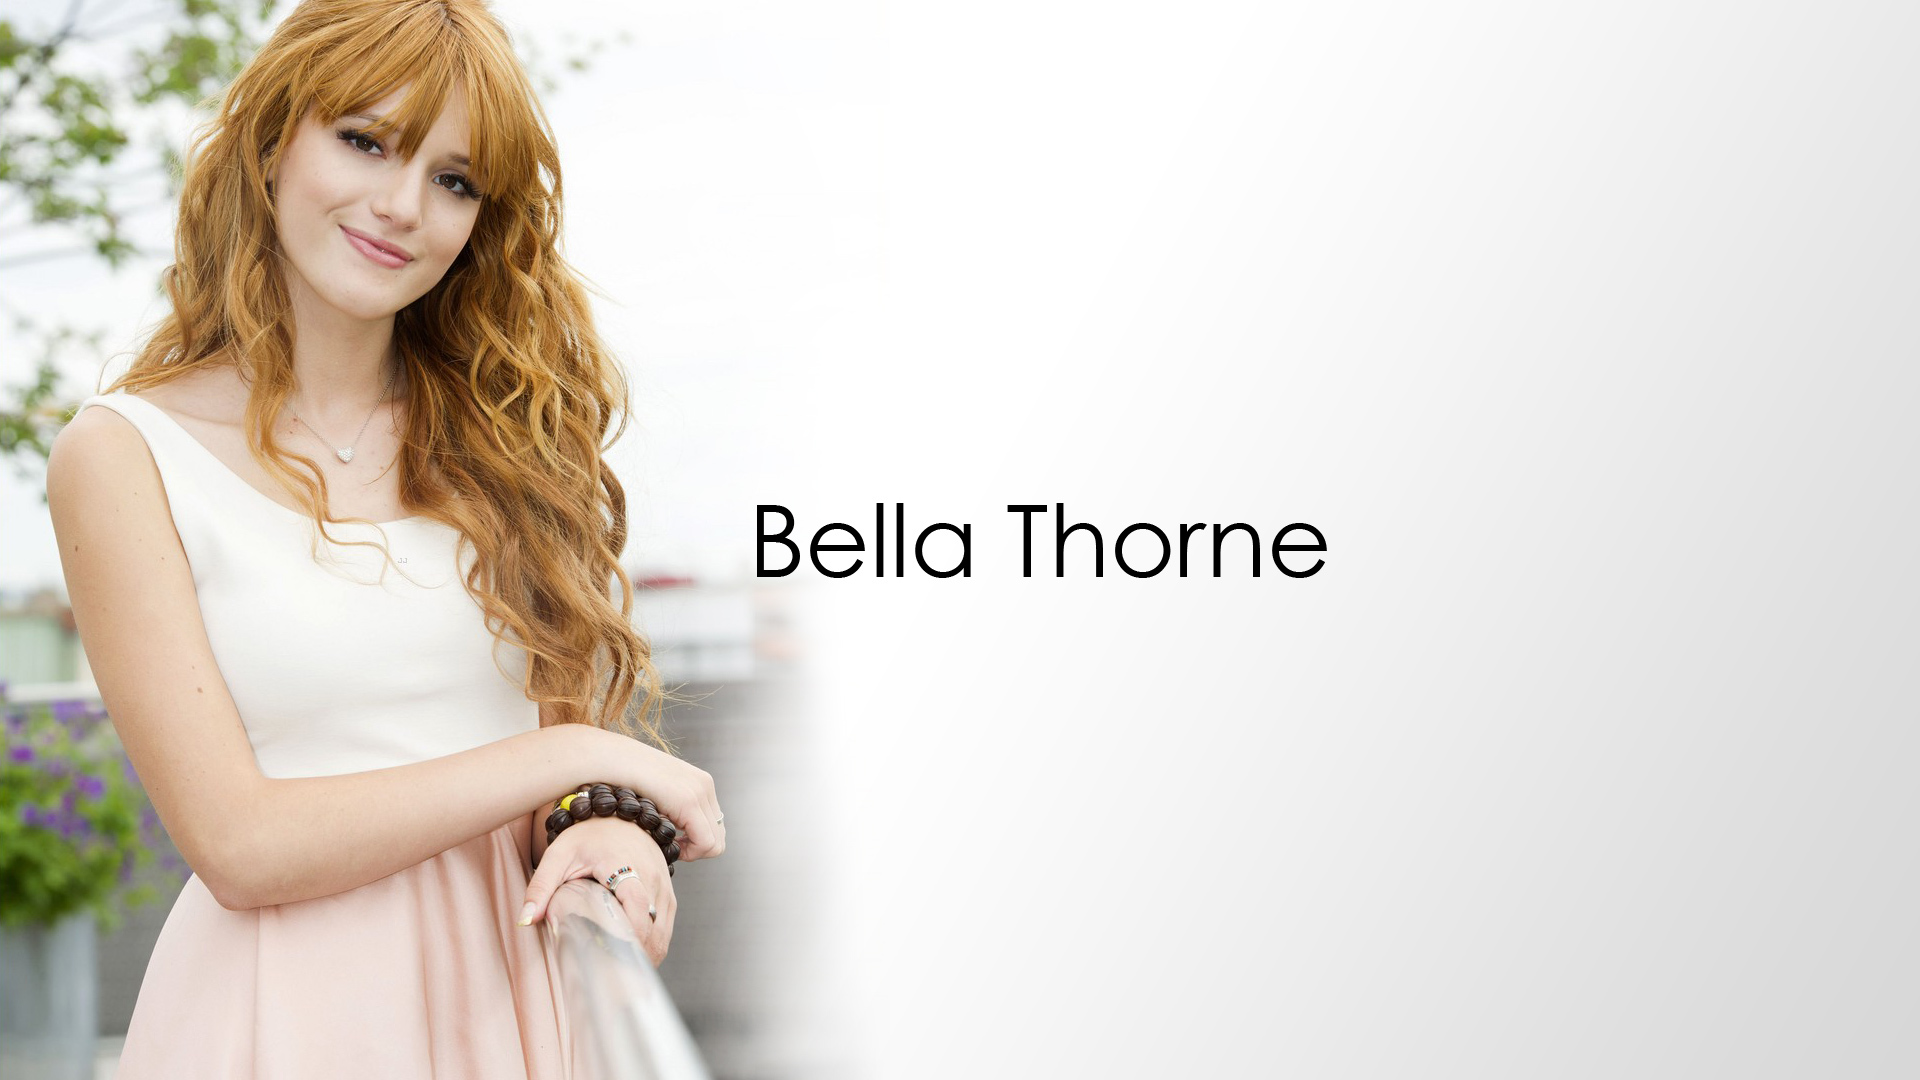 Bella thorne wallpapers images photos pictures backgrounds - Bella thorne wallpaper ...